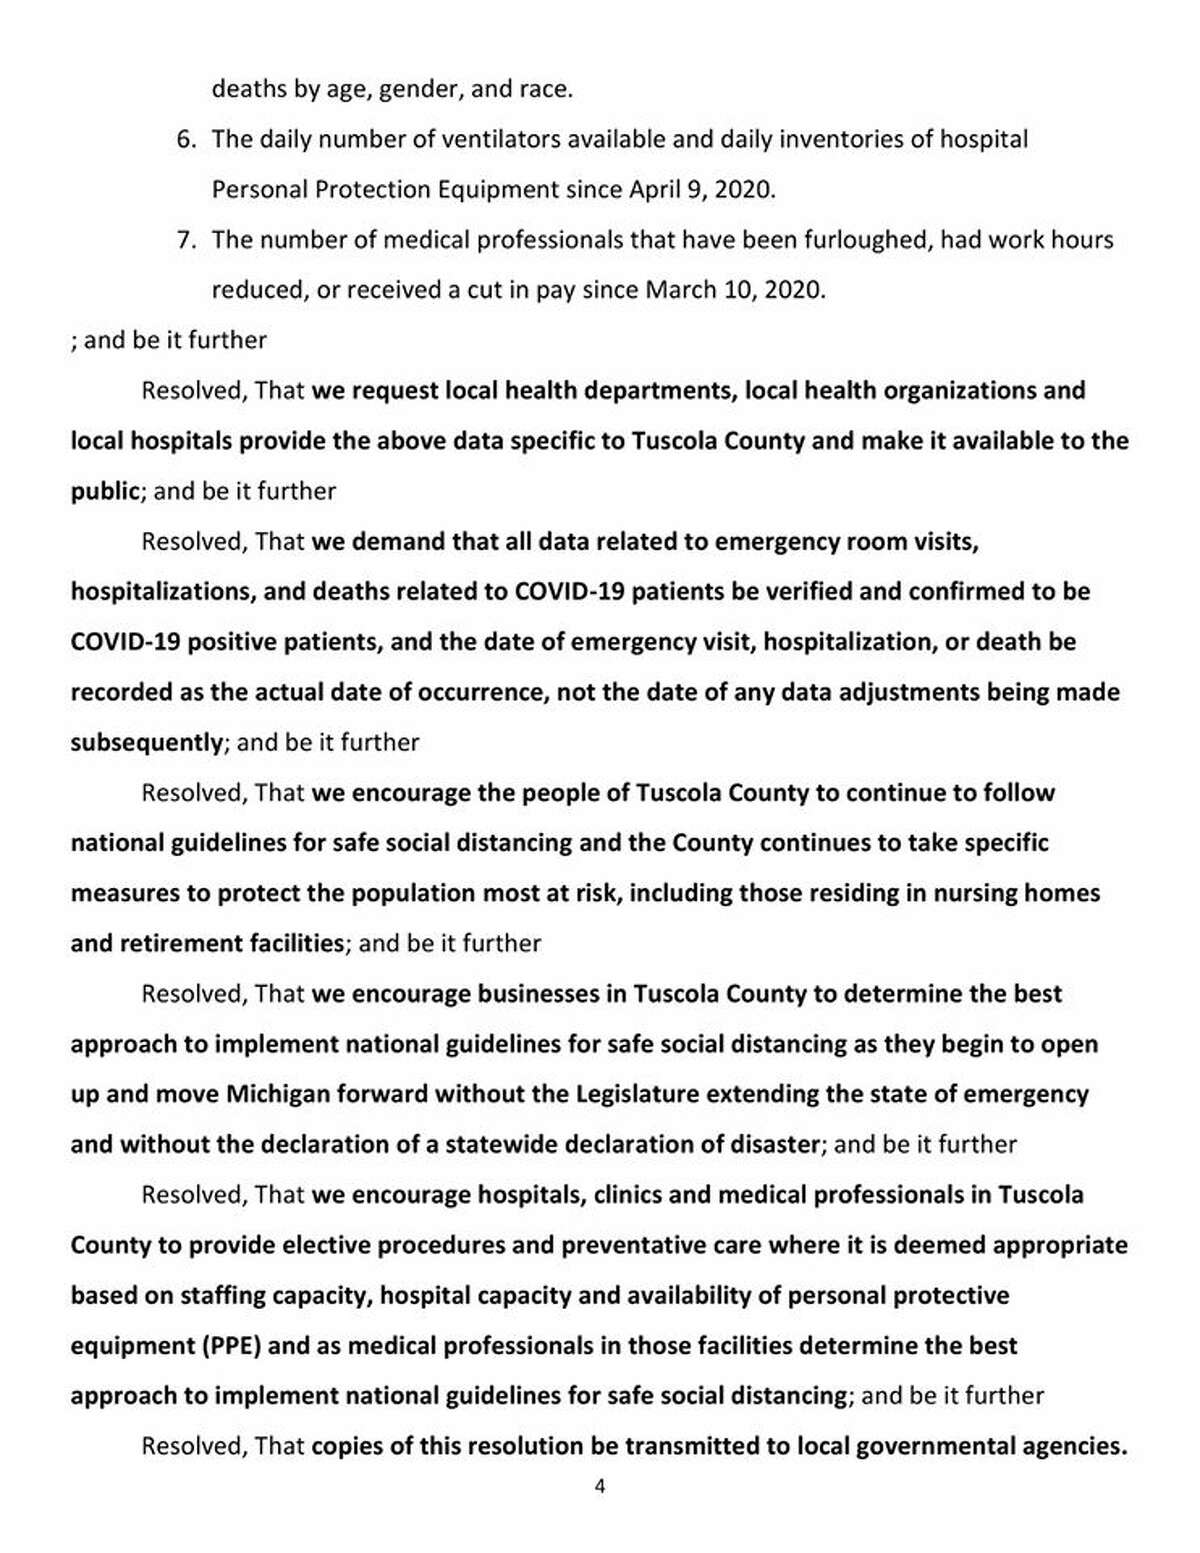 Tuscola County has passed a resolution opposing the governor's actions and demanding answers.